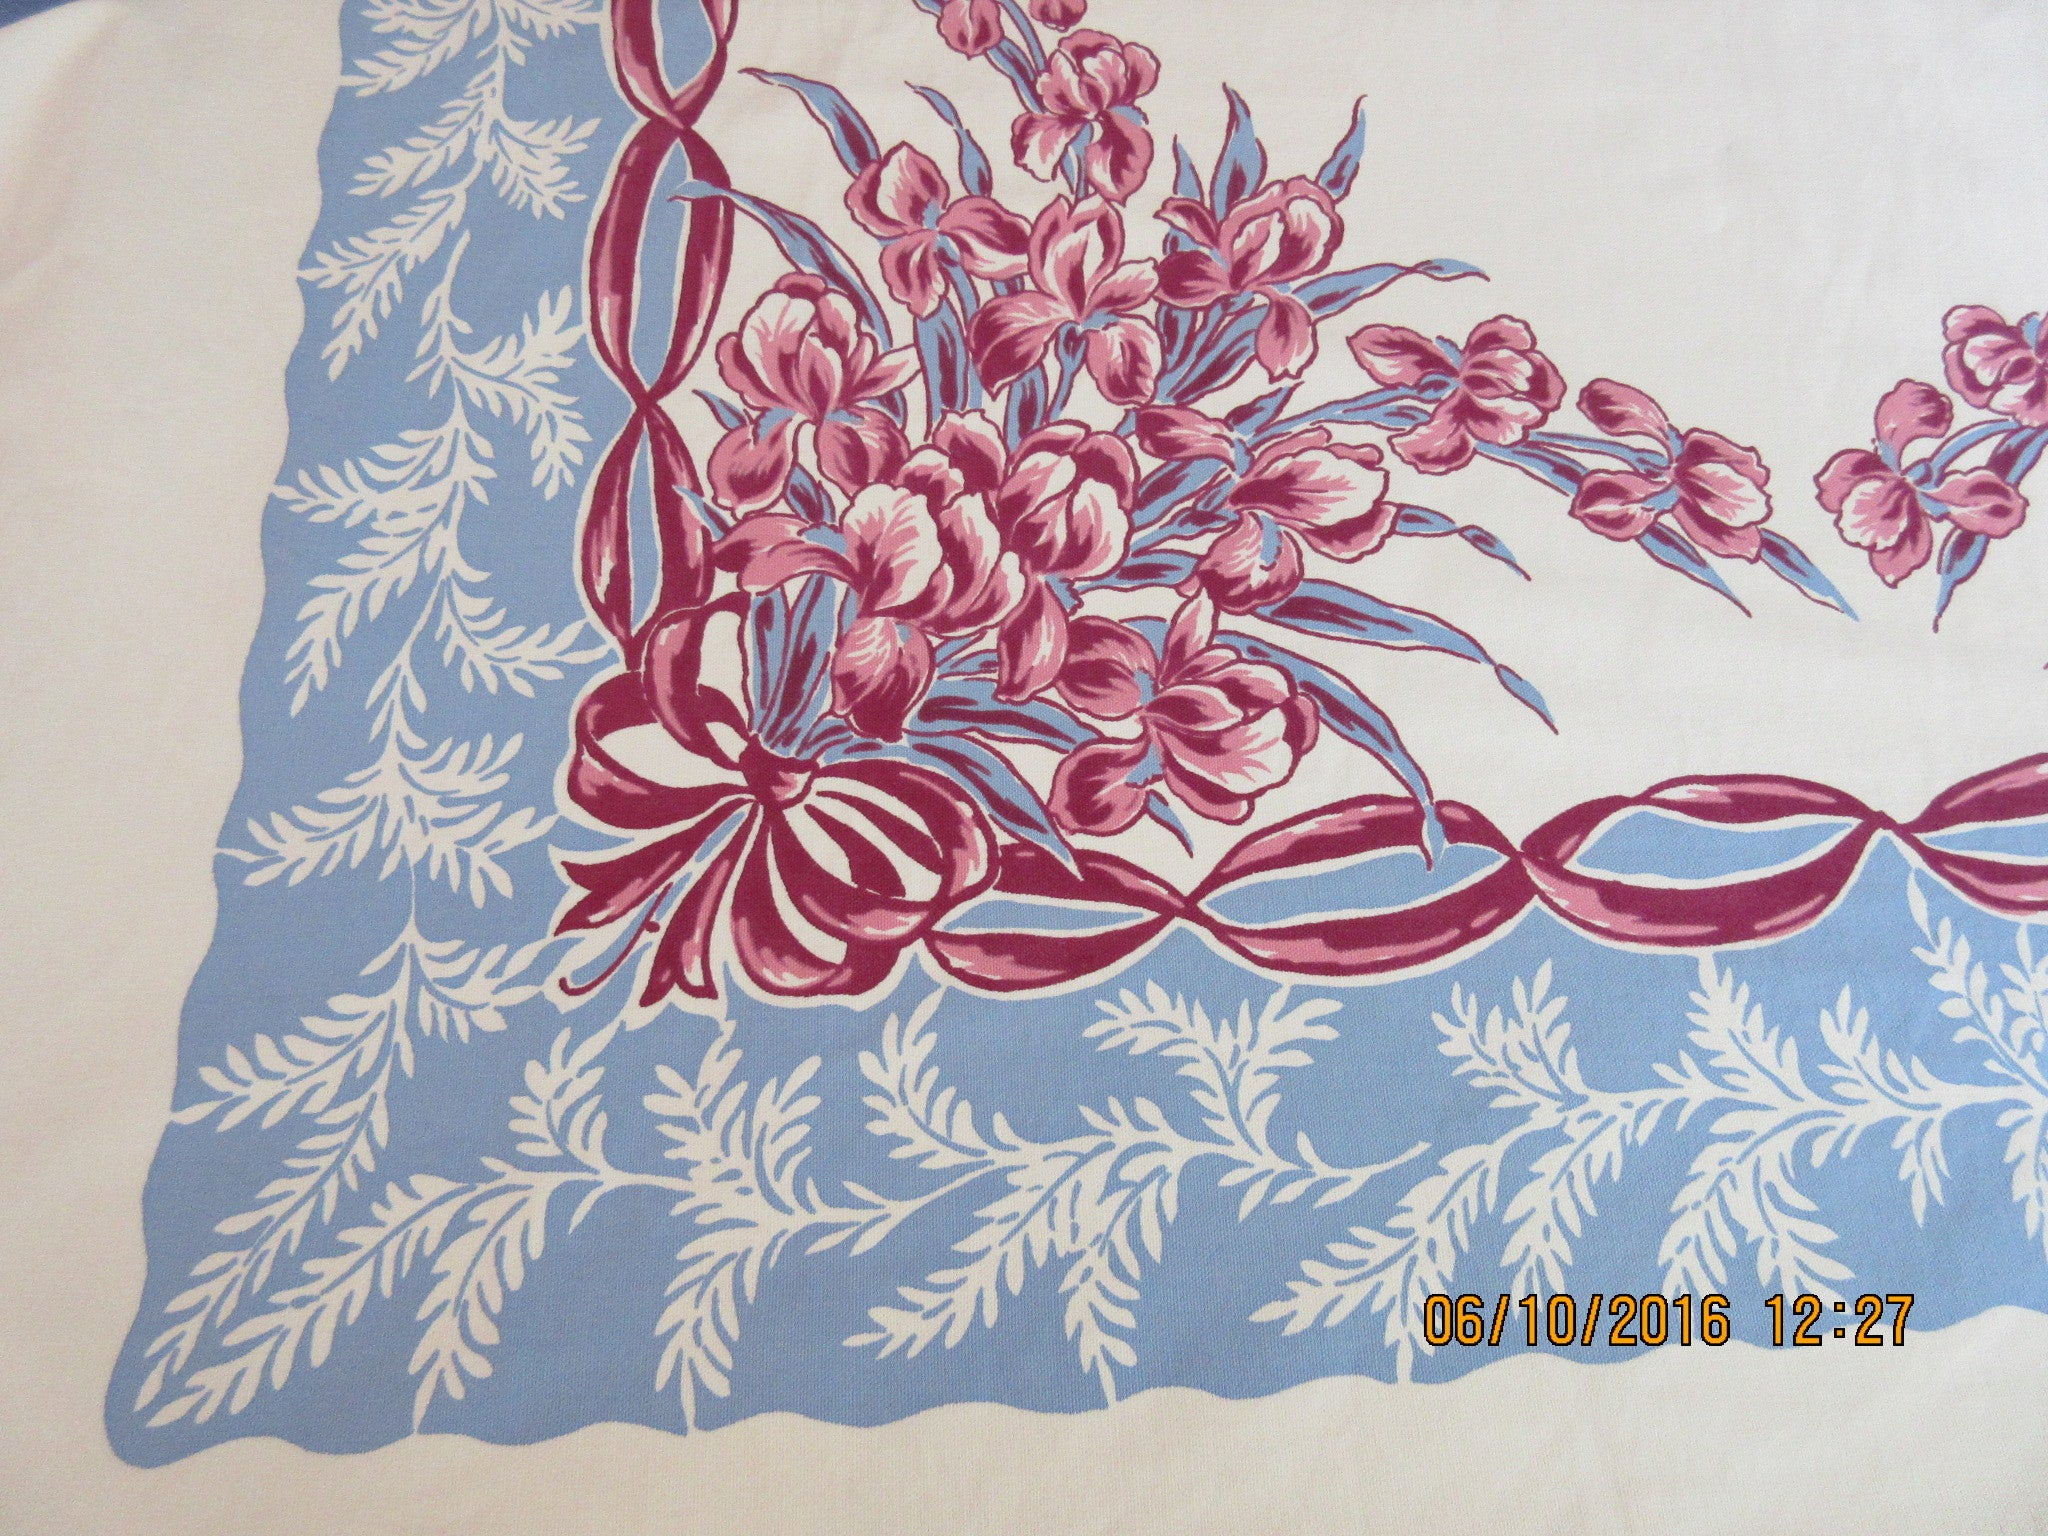 Large Pink Magenta Iris Bows on Blue Floral Vintage Printed Tablecloth (72 X 60)